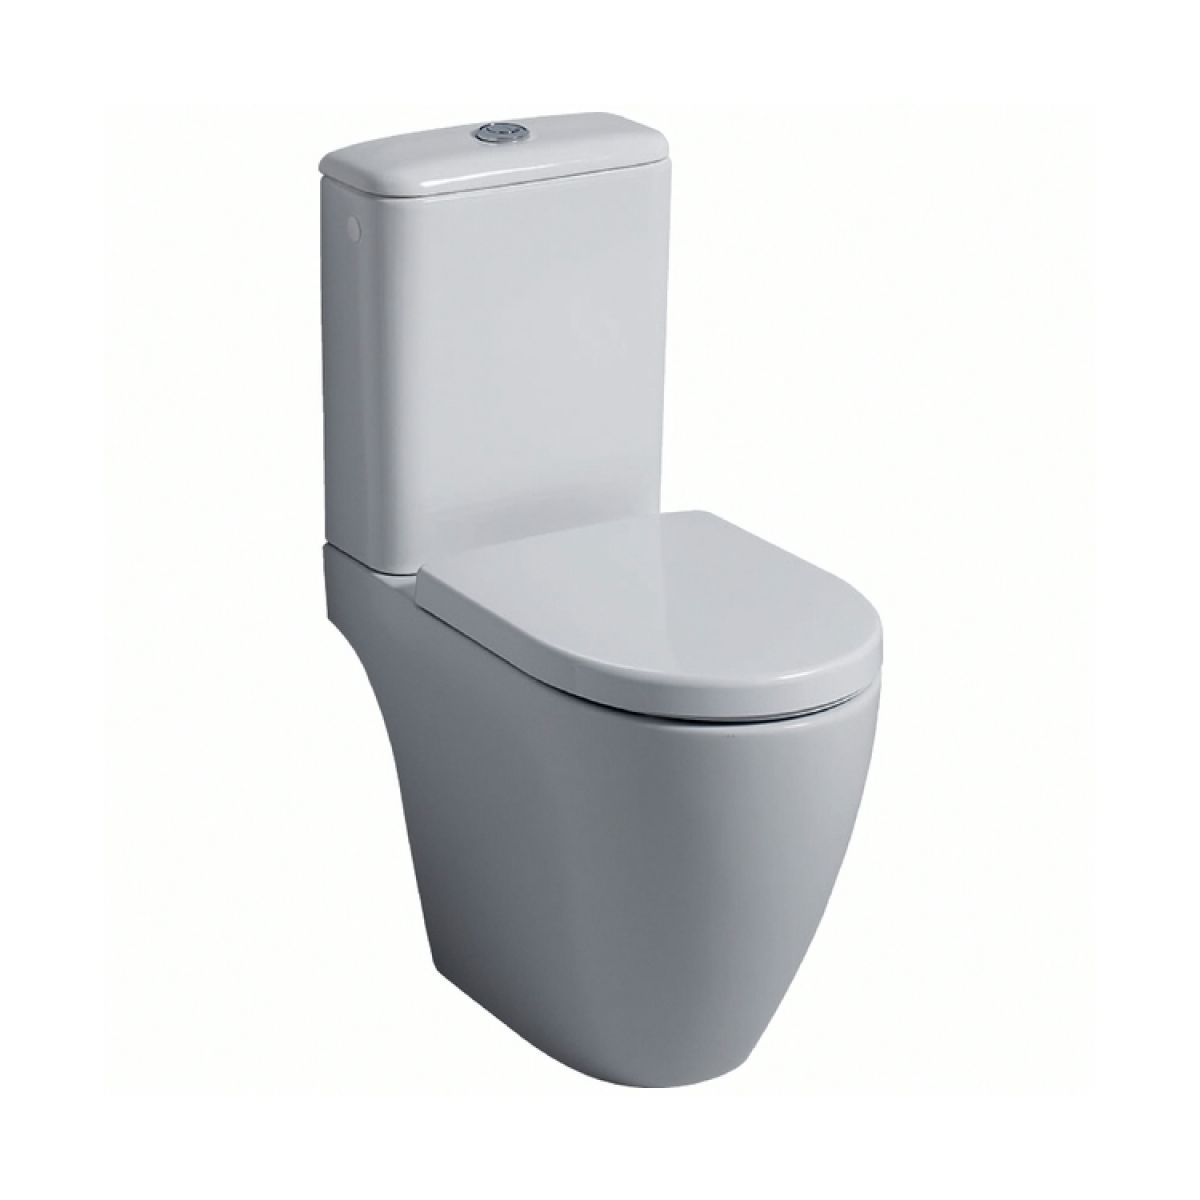 geberit icon close coupled toilet uk bathrooms. Black Bedroom Furniture Sets. Home Design Ideas